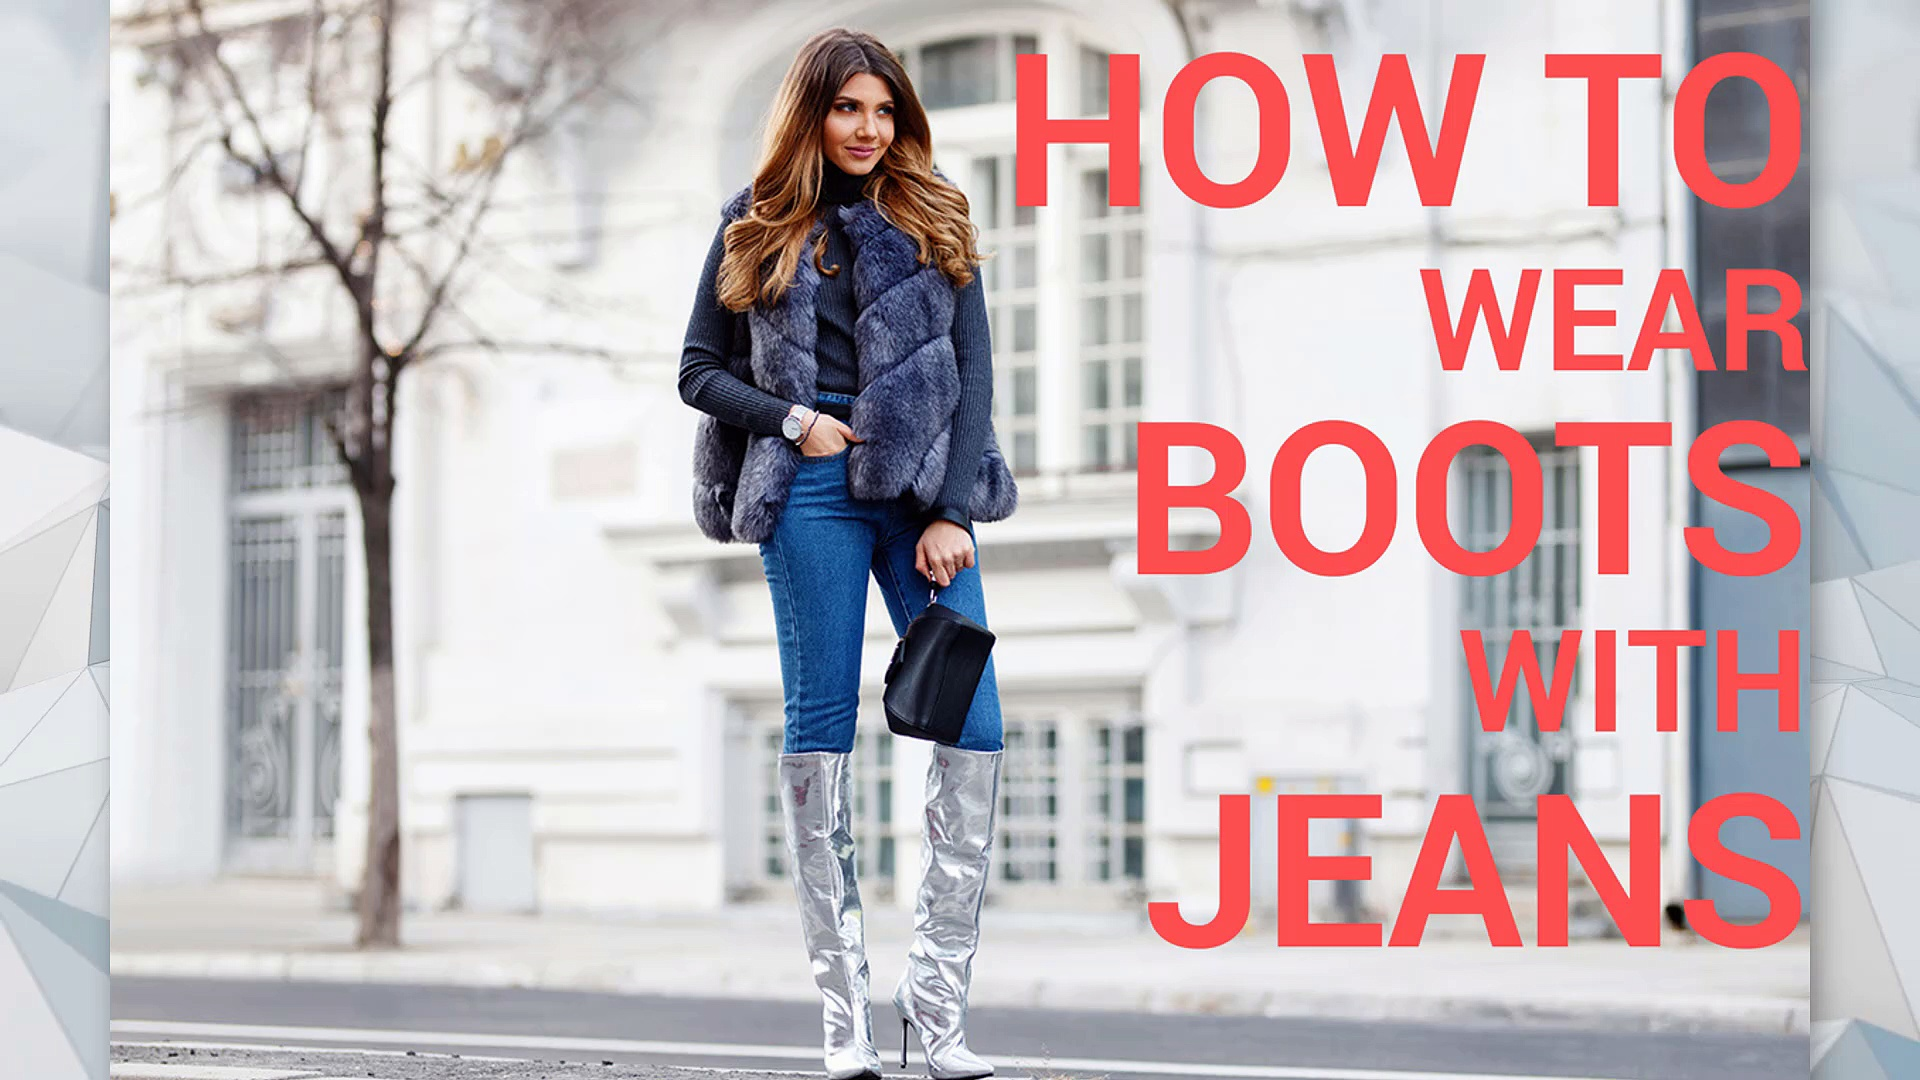 How to wear boots with jeans. http://bit.ly/2zwnQ1x